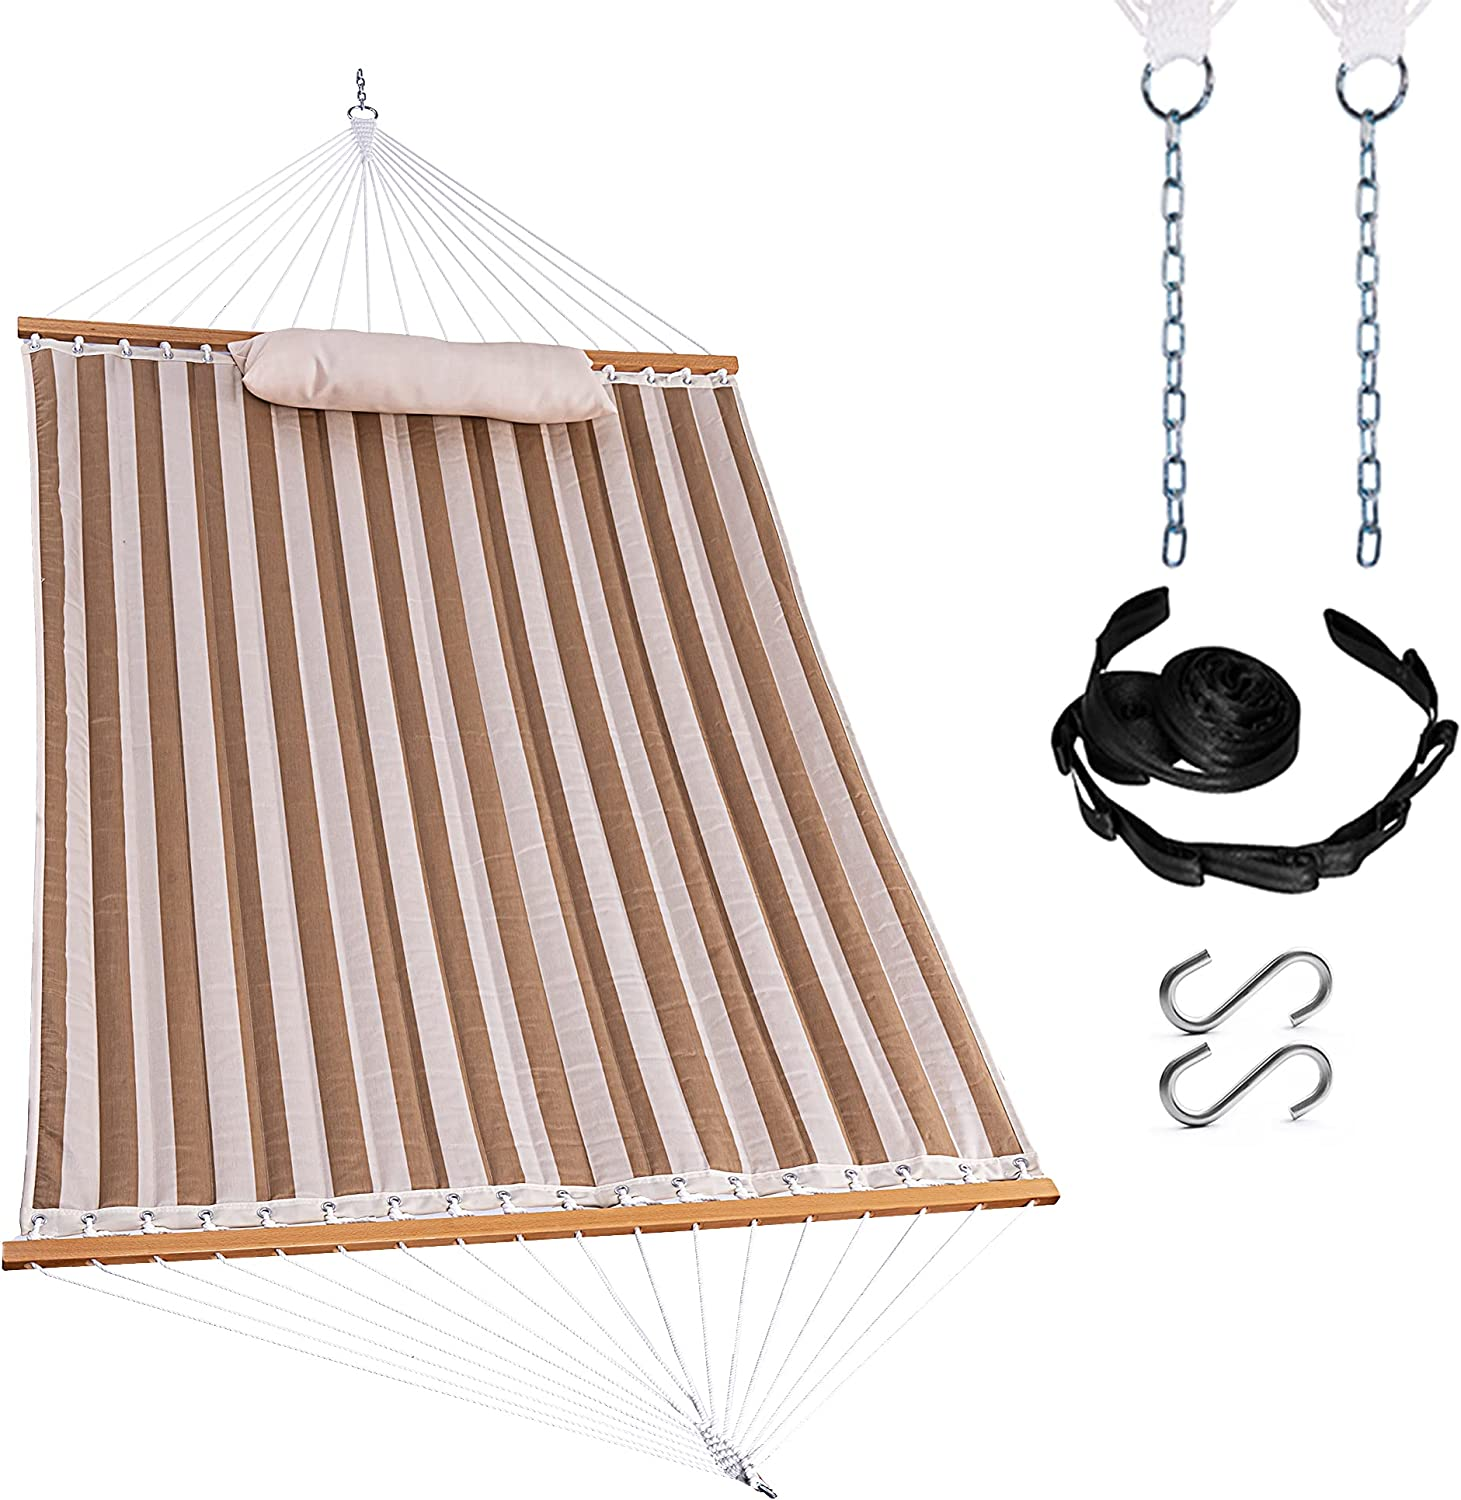 Harbourside Manufacturer regenerated product Quilted Fabric Hammock with Spreader Max 87% OFF Double